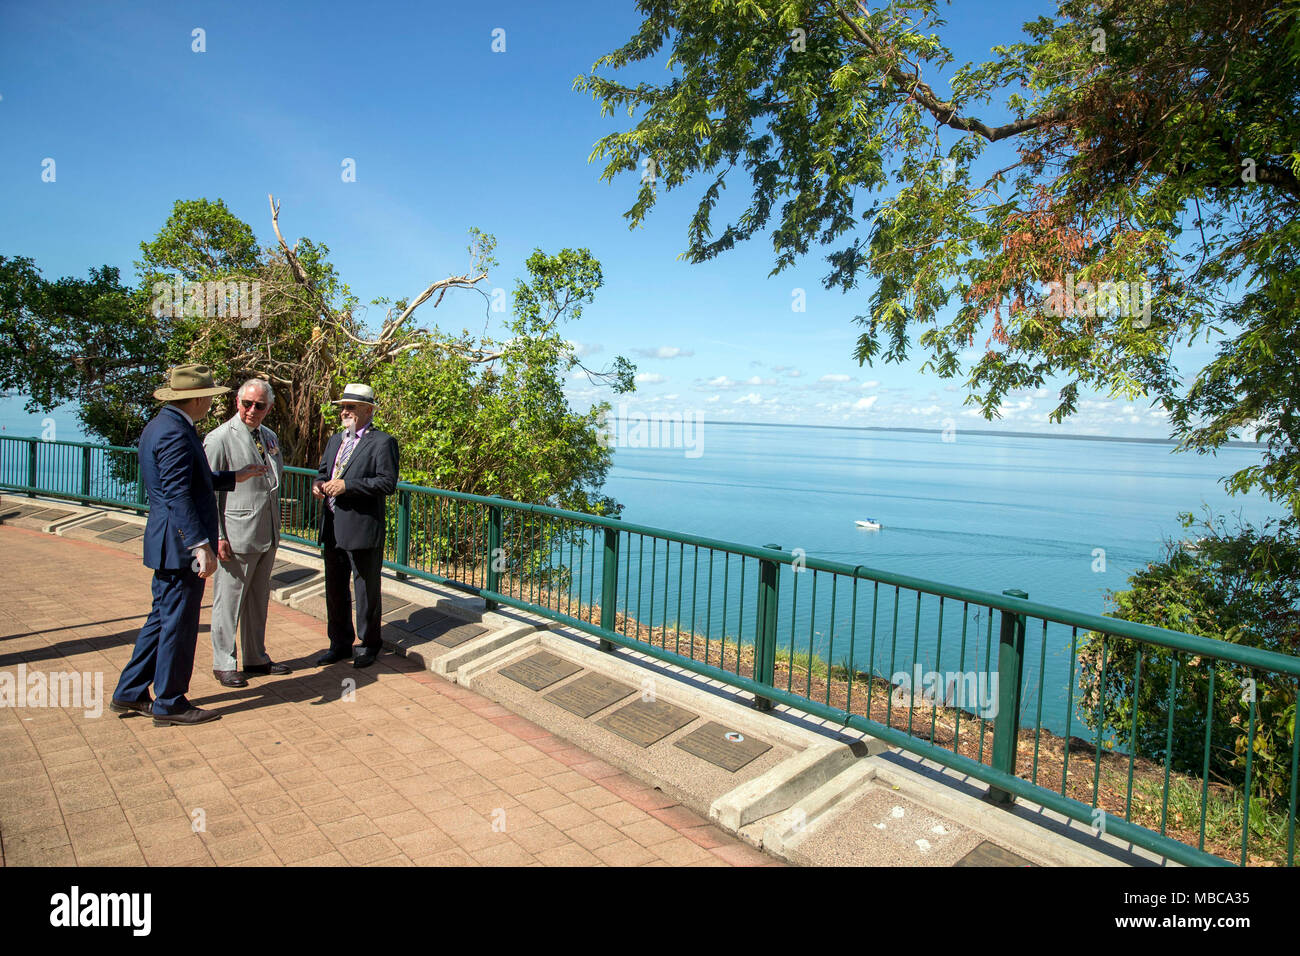 The Prince of Wales is shown memorial plaques at the Cenotaph in Darwin, Australia, by RSL President Bob Shewring, Right, and Michael Gunner, Chief Minister of the Northern Territory, Left. The memorial overlooks Darwin Harbour from which all men left during the First World War and would have been one of the last familiar sites the men would have seen as they sailed off to war and where so many died during the Japanese air attack on 19 February 1942. - Stock Image